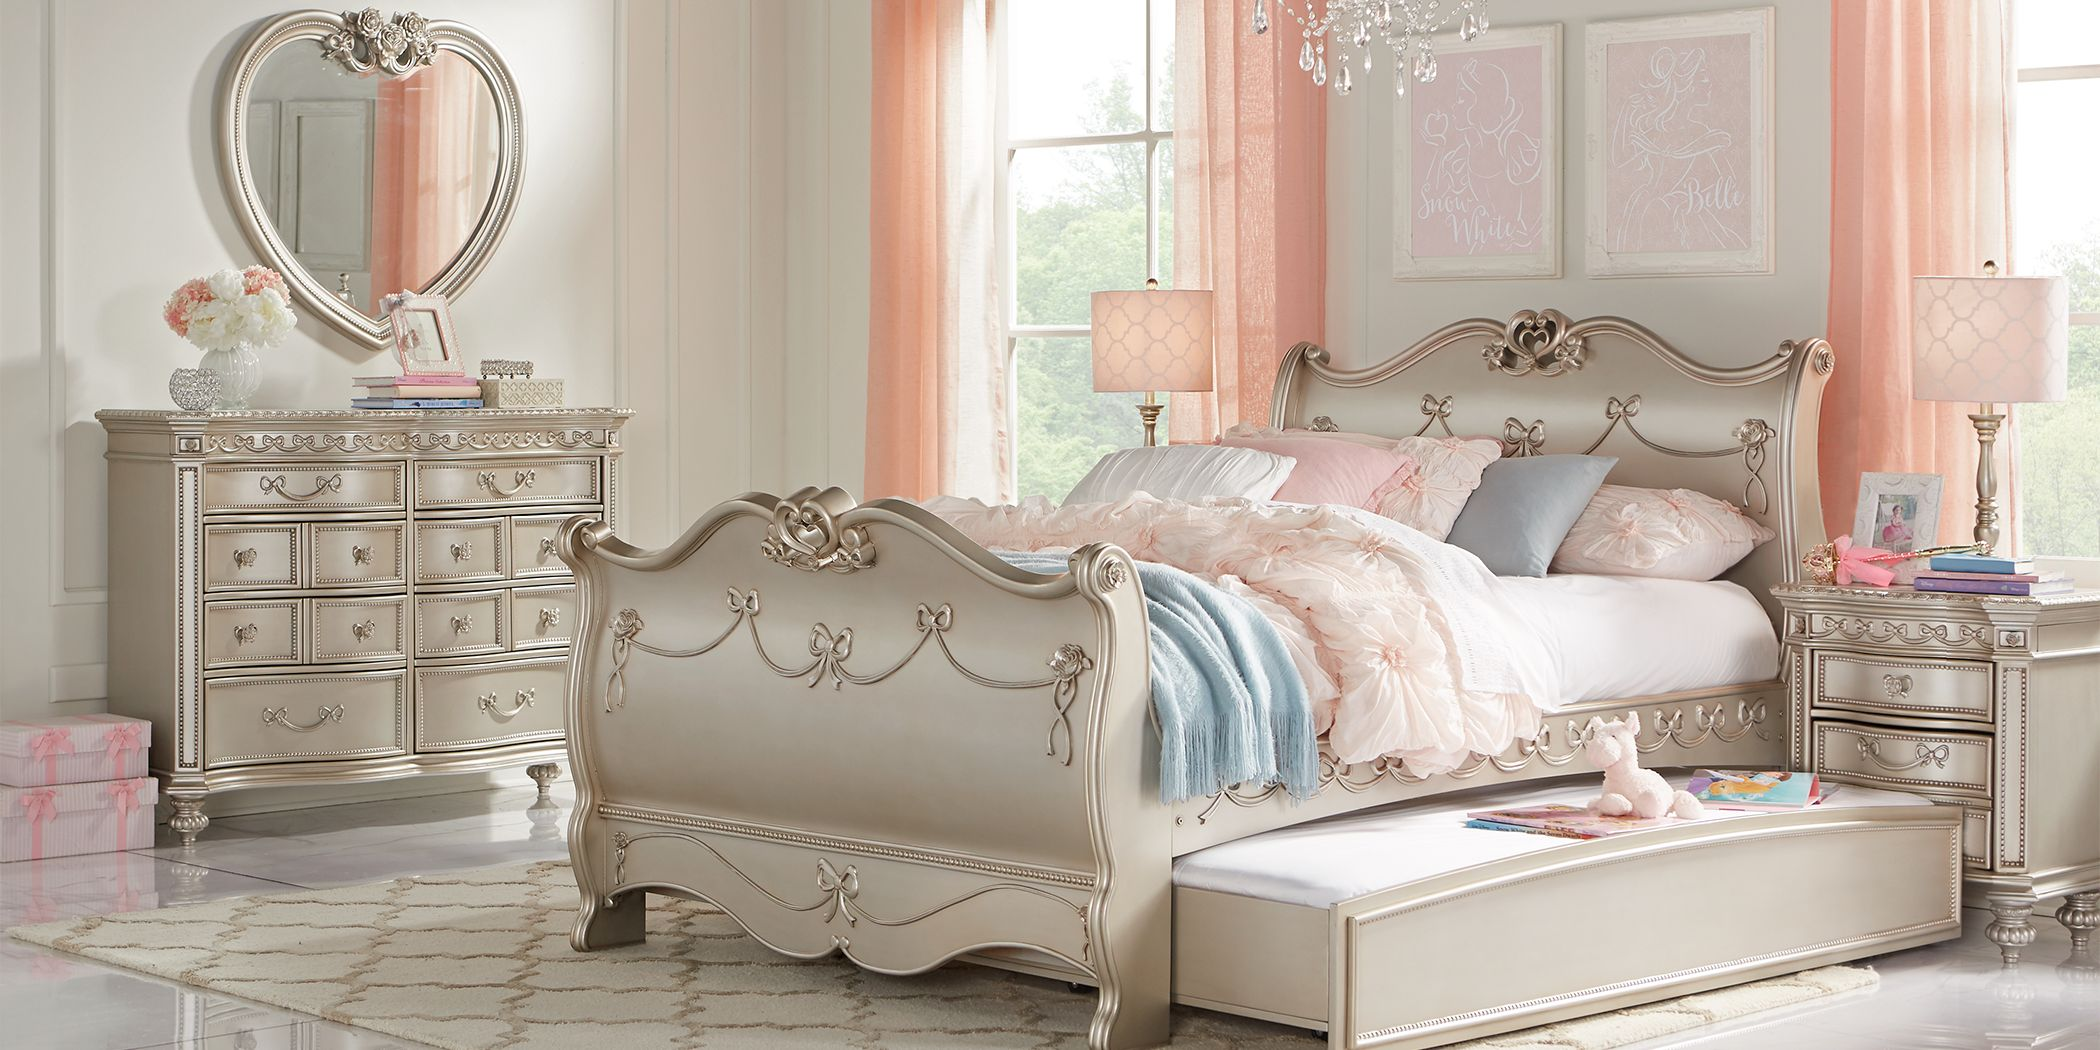 Baseball Bed Rooms To Go Cheaper Than Retail Price Buy Clothing Accessories And Lifestyle Products For Women Men